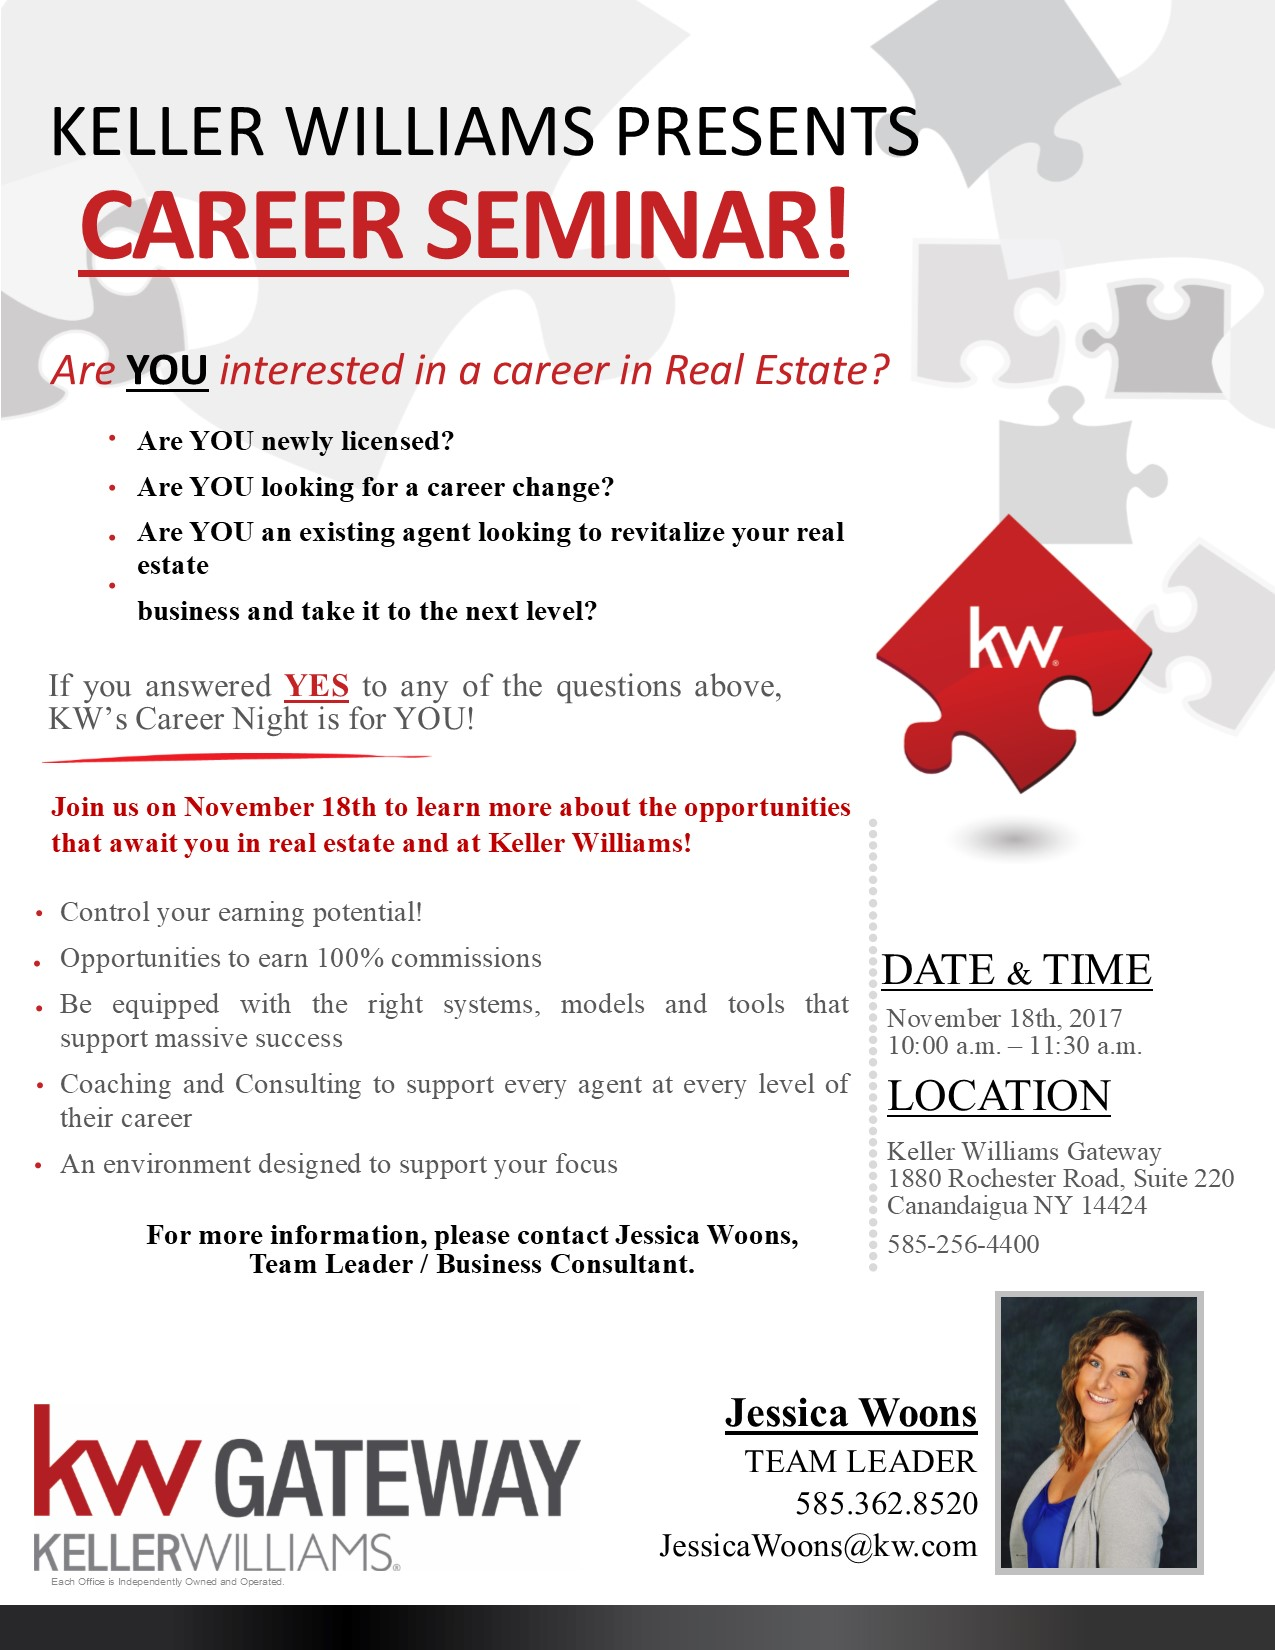 Great opportunity to come & learn what it looks like starting a career in Real Estate and what working with Keller Williams can do for you!